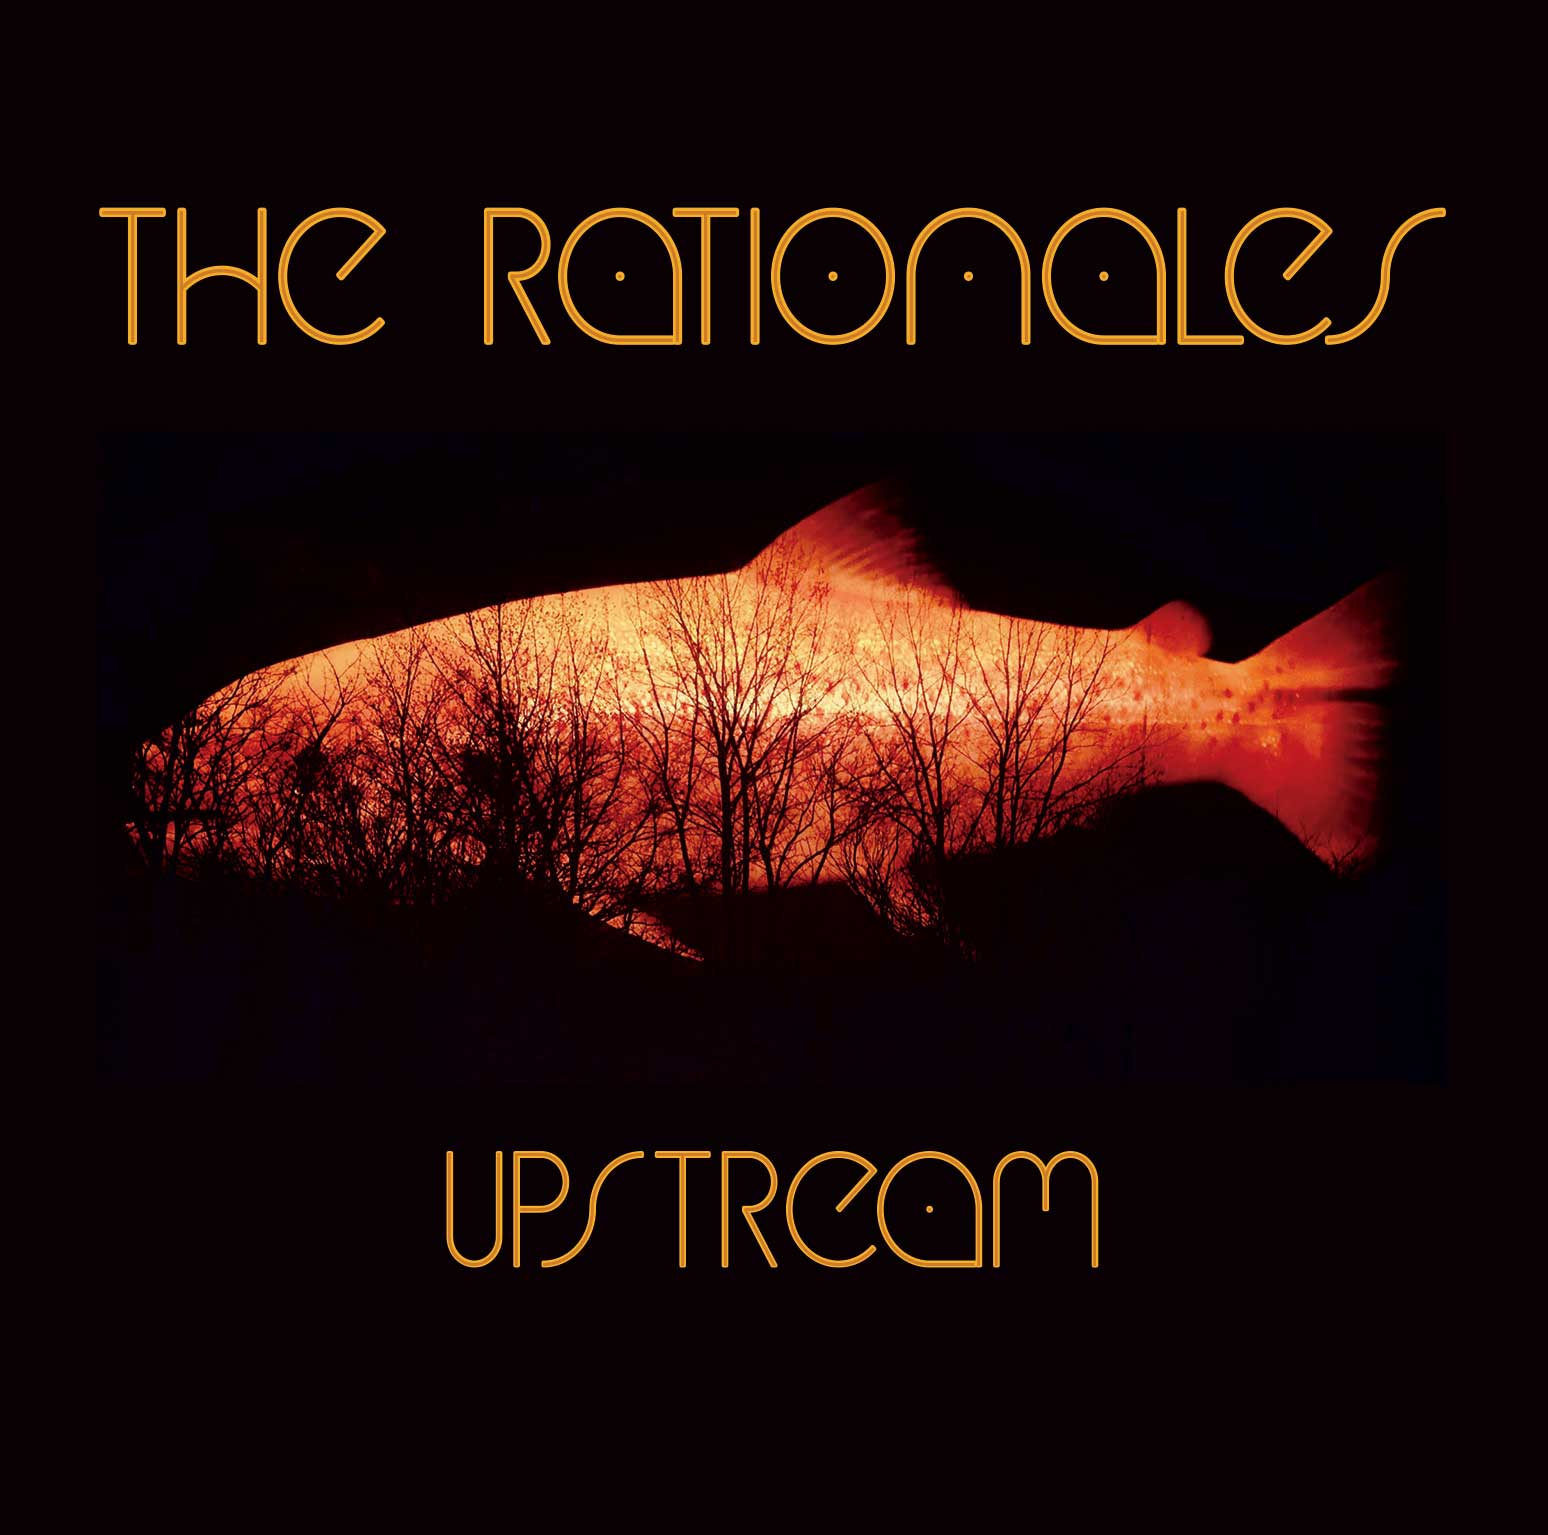 The Rationales - Upstream